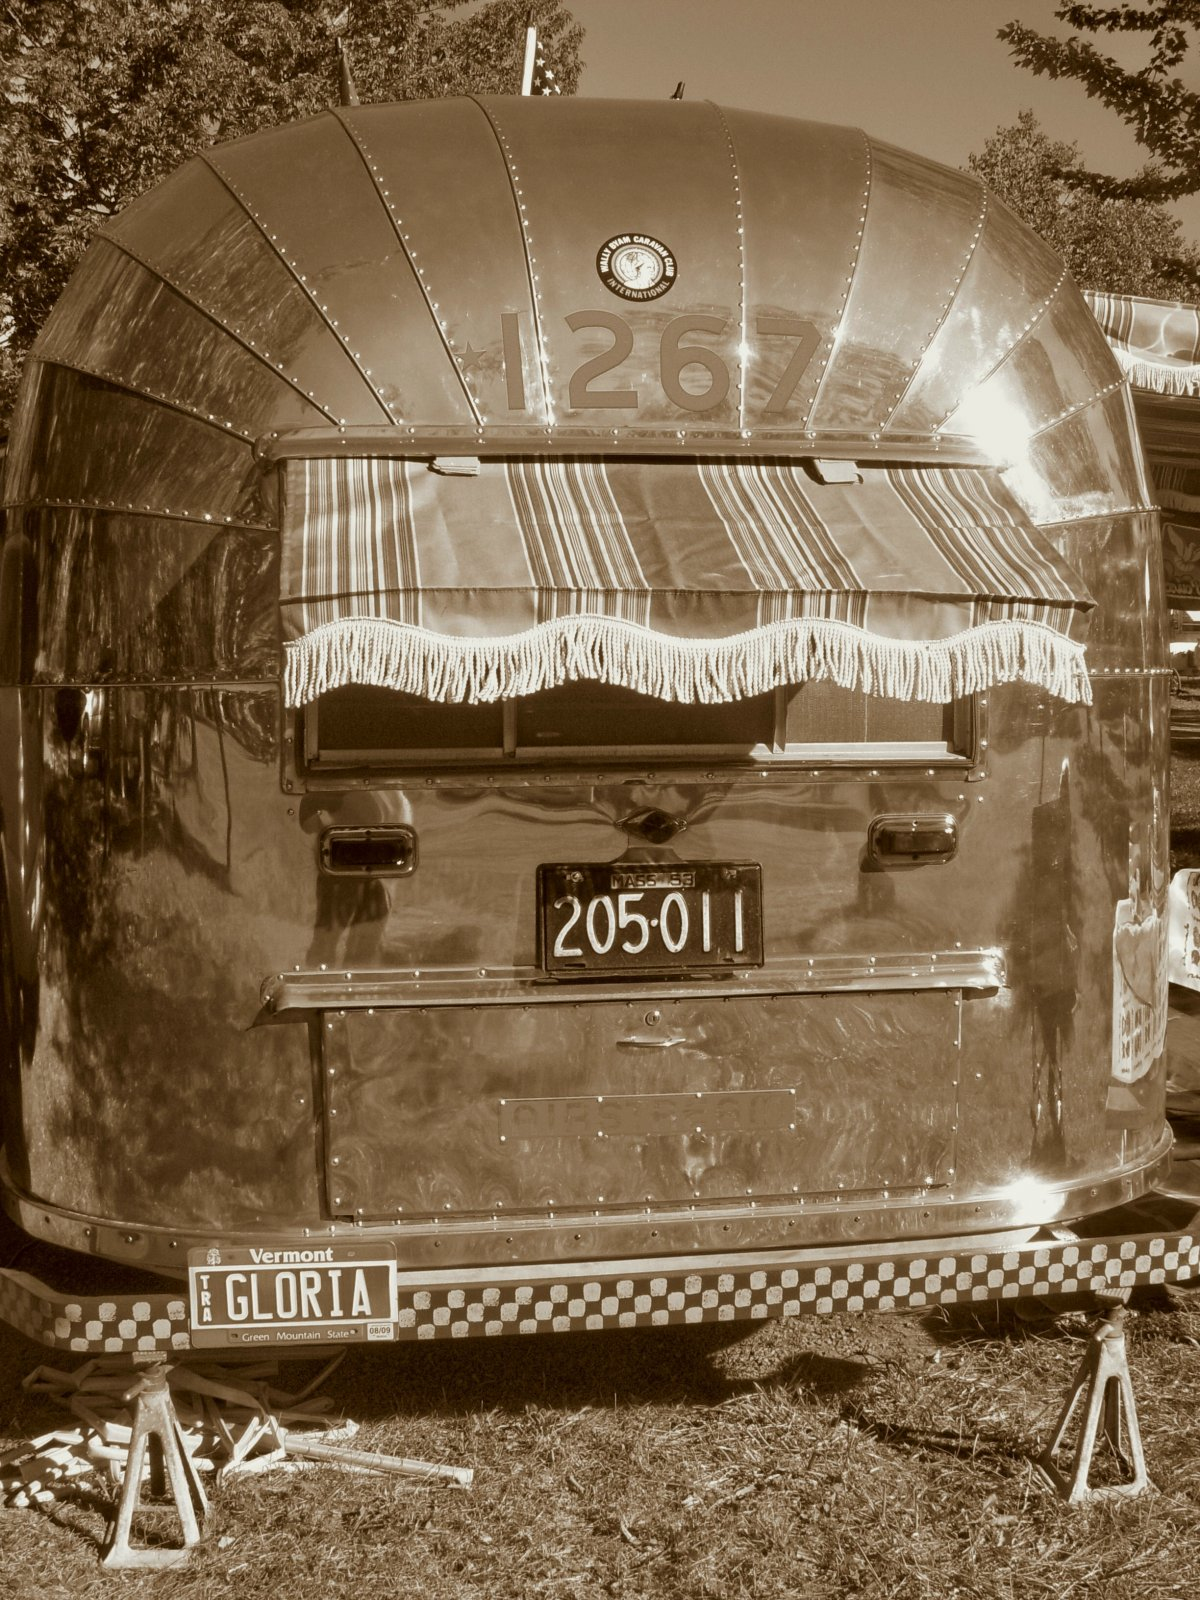 Click image for larger version  Name:back of 53 sepia.jpg Views:85 Size:445.8 KB ID:103247